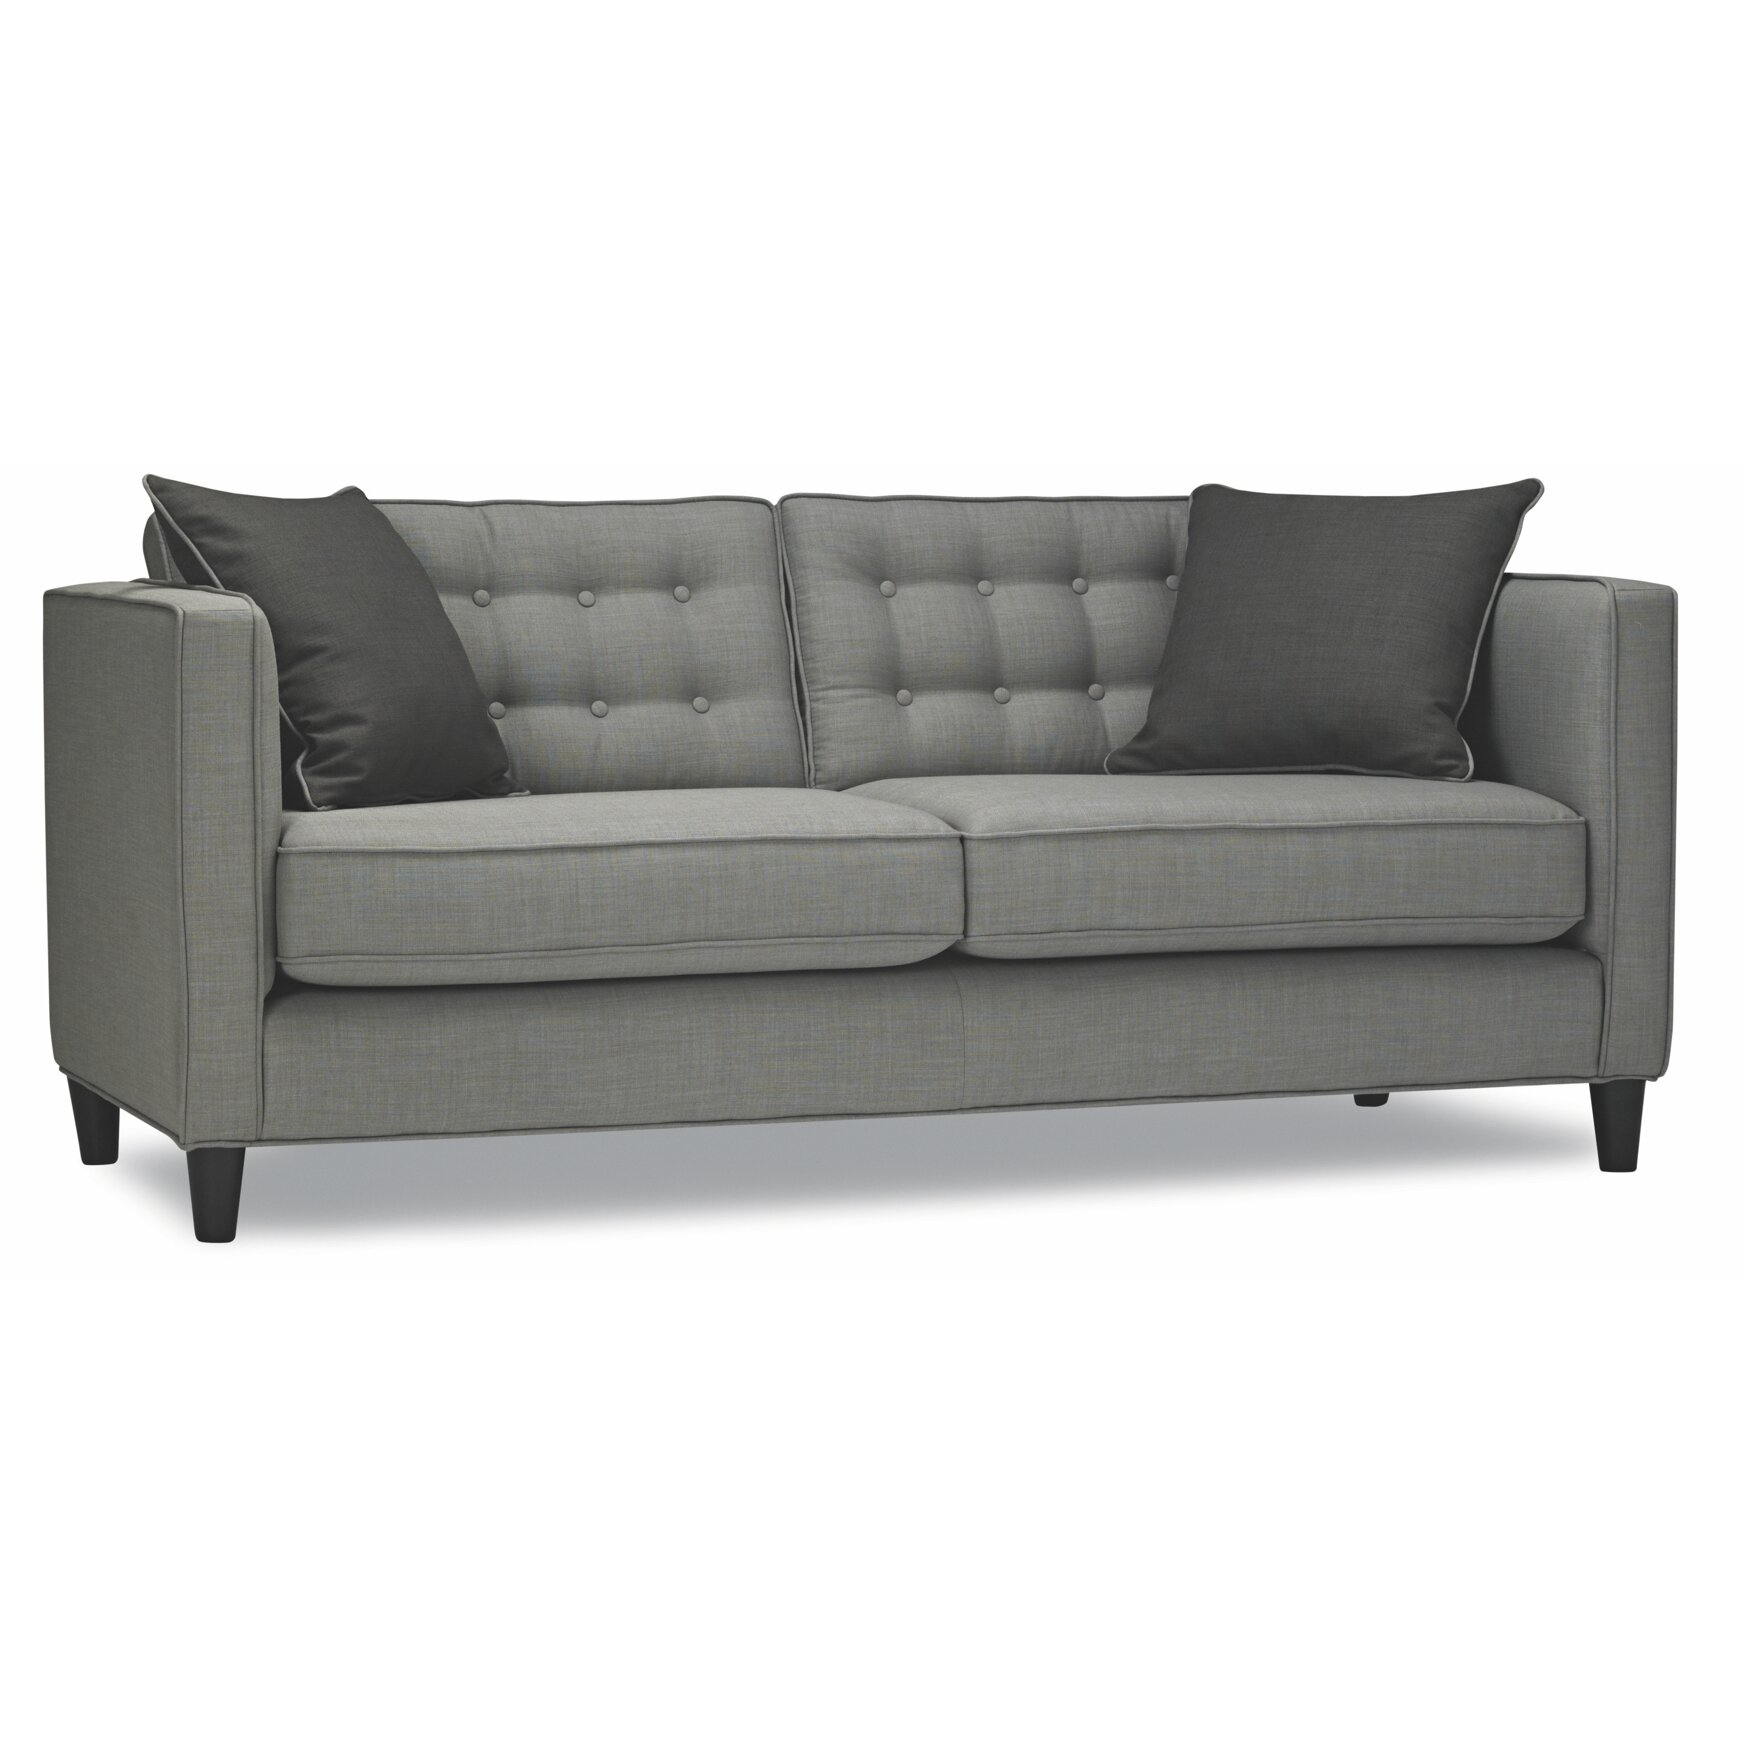 sofas to go potts sofa reviews wayfair. Black Bedroom Furniture Sets. Home Design Ideas